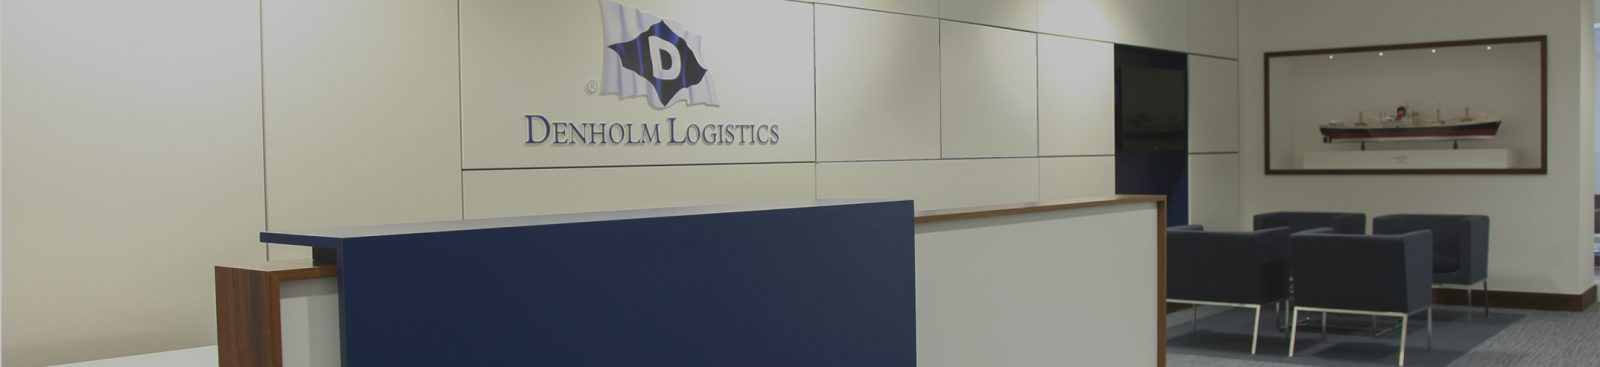 A modern furniture refresh for Denholm Global Logistics image